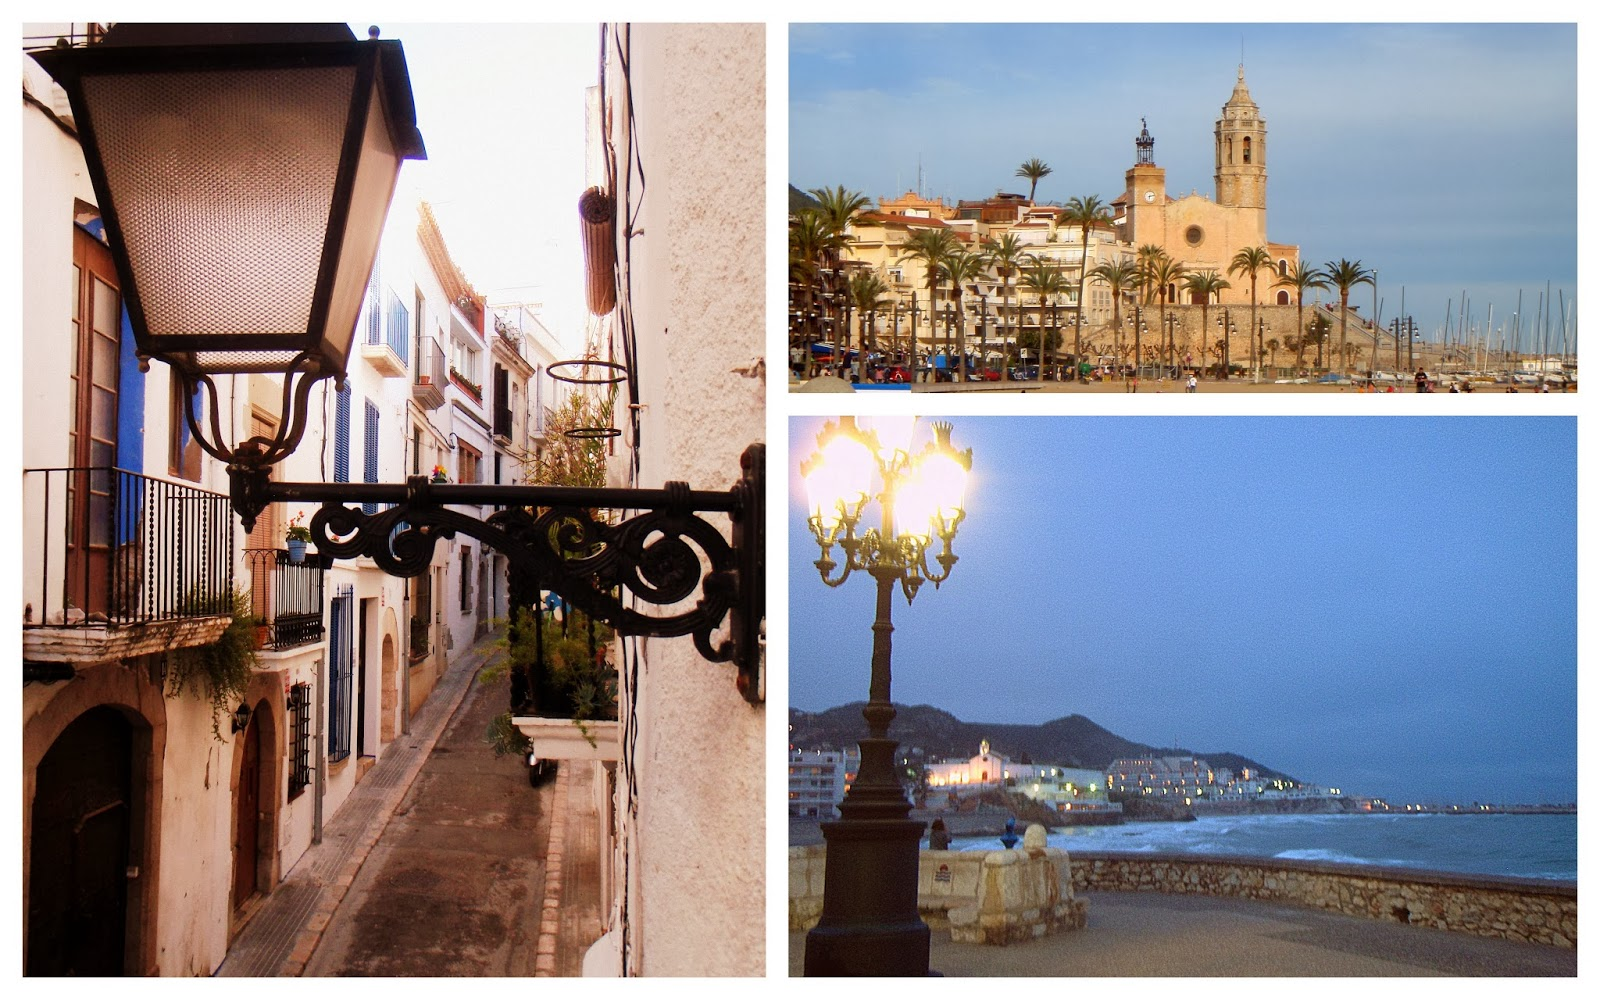 The picturesque Sitges when I visited the town in 2009 - so serene